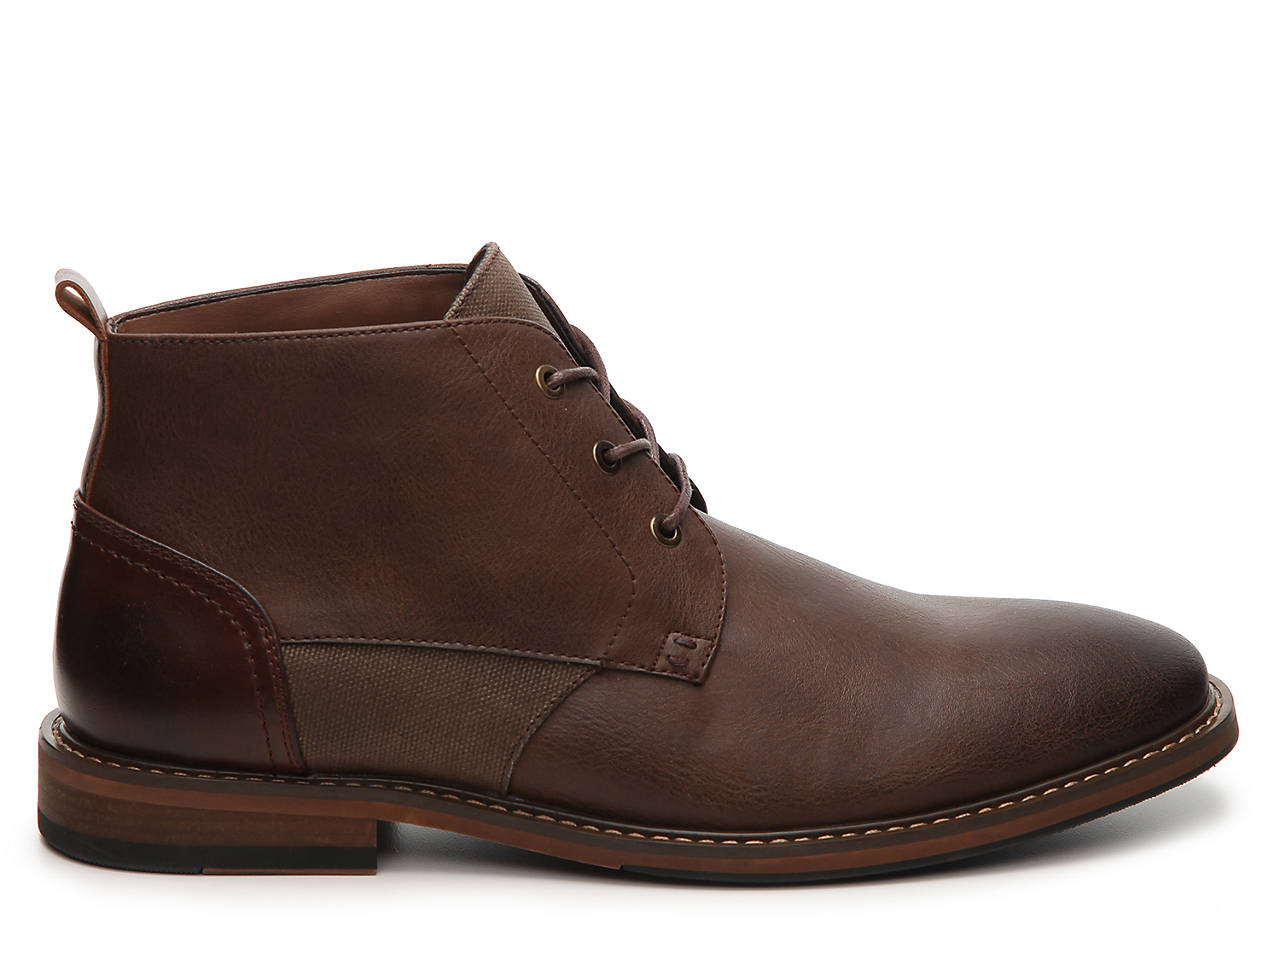 f598e3b966d Seven 91 Rochetta Chukka Boot Men s Shoes